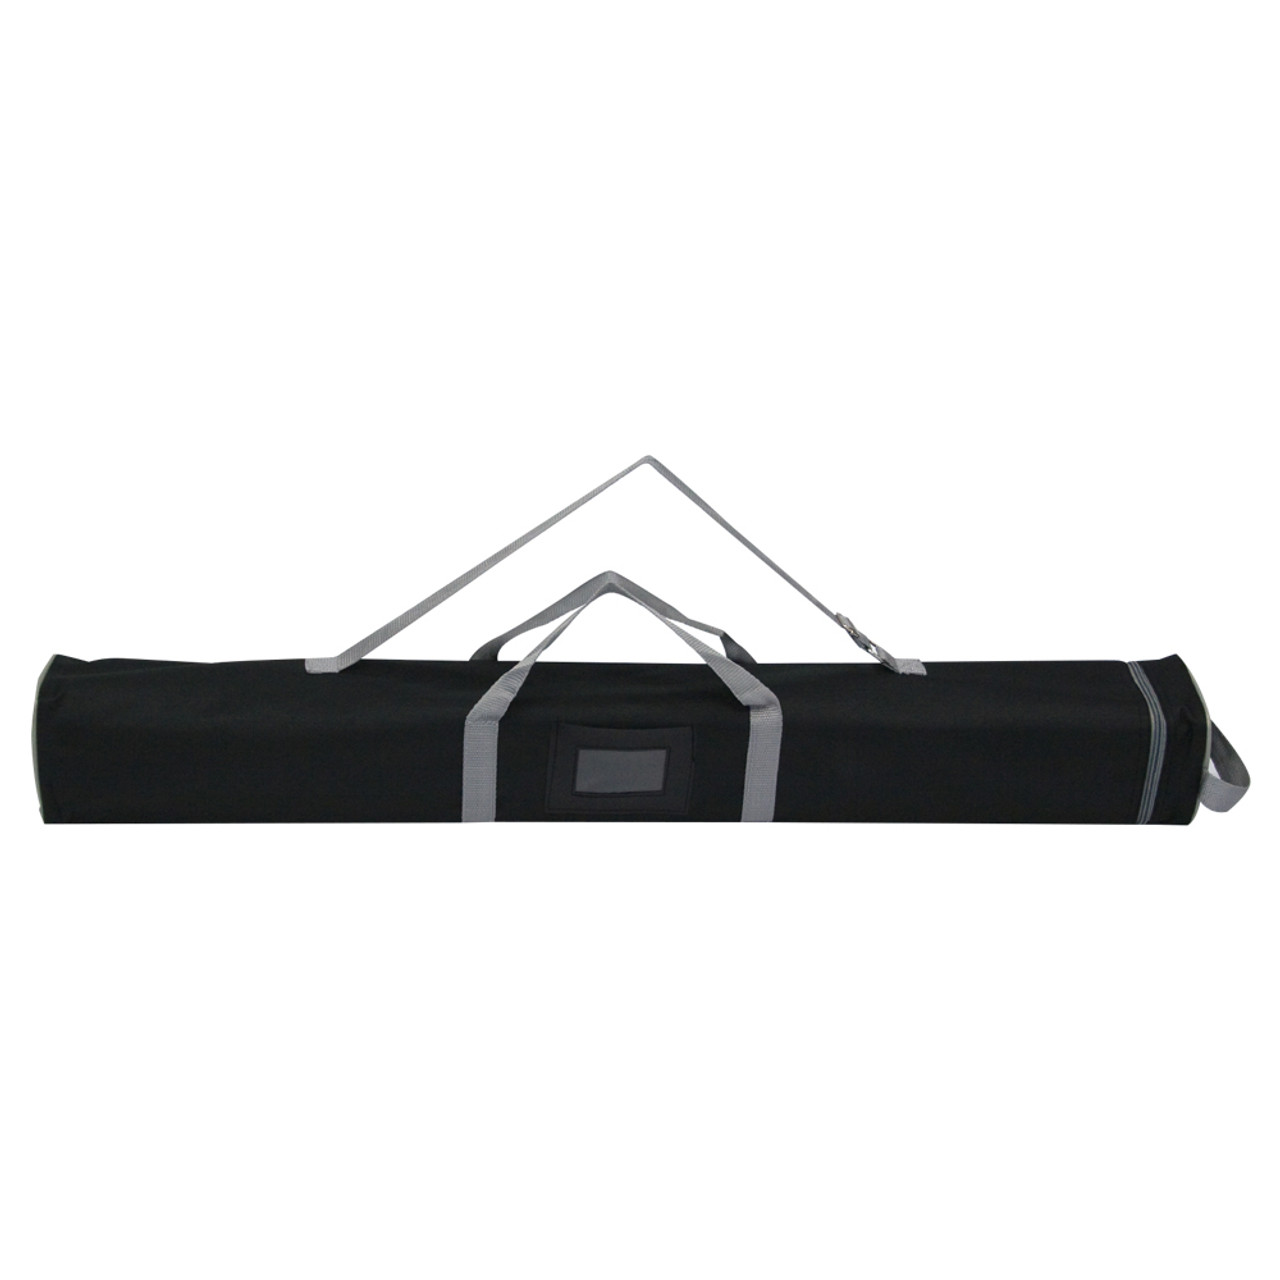 24 inch travel bag econo